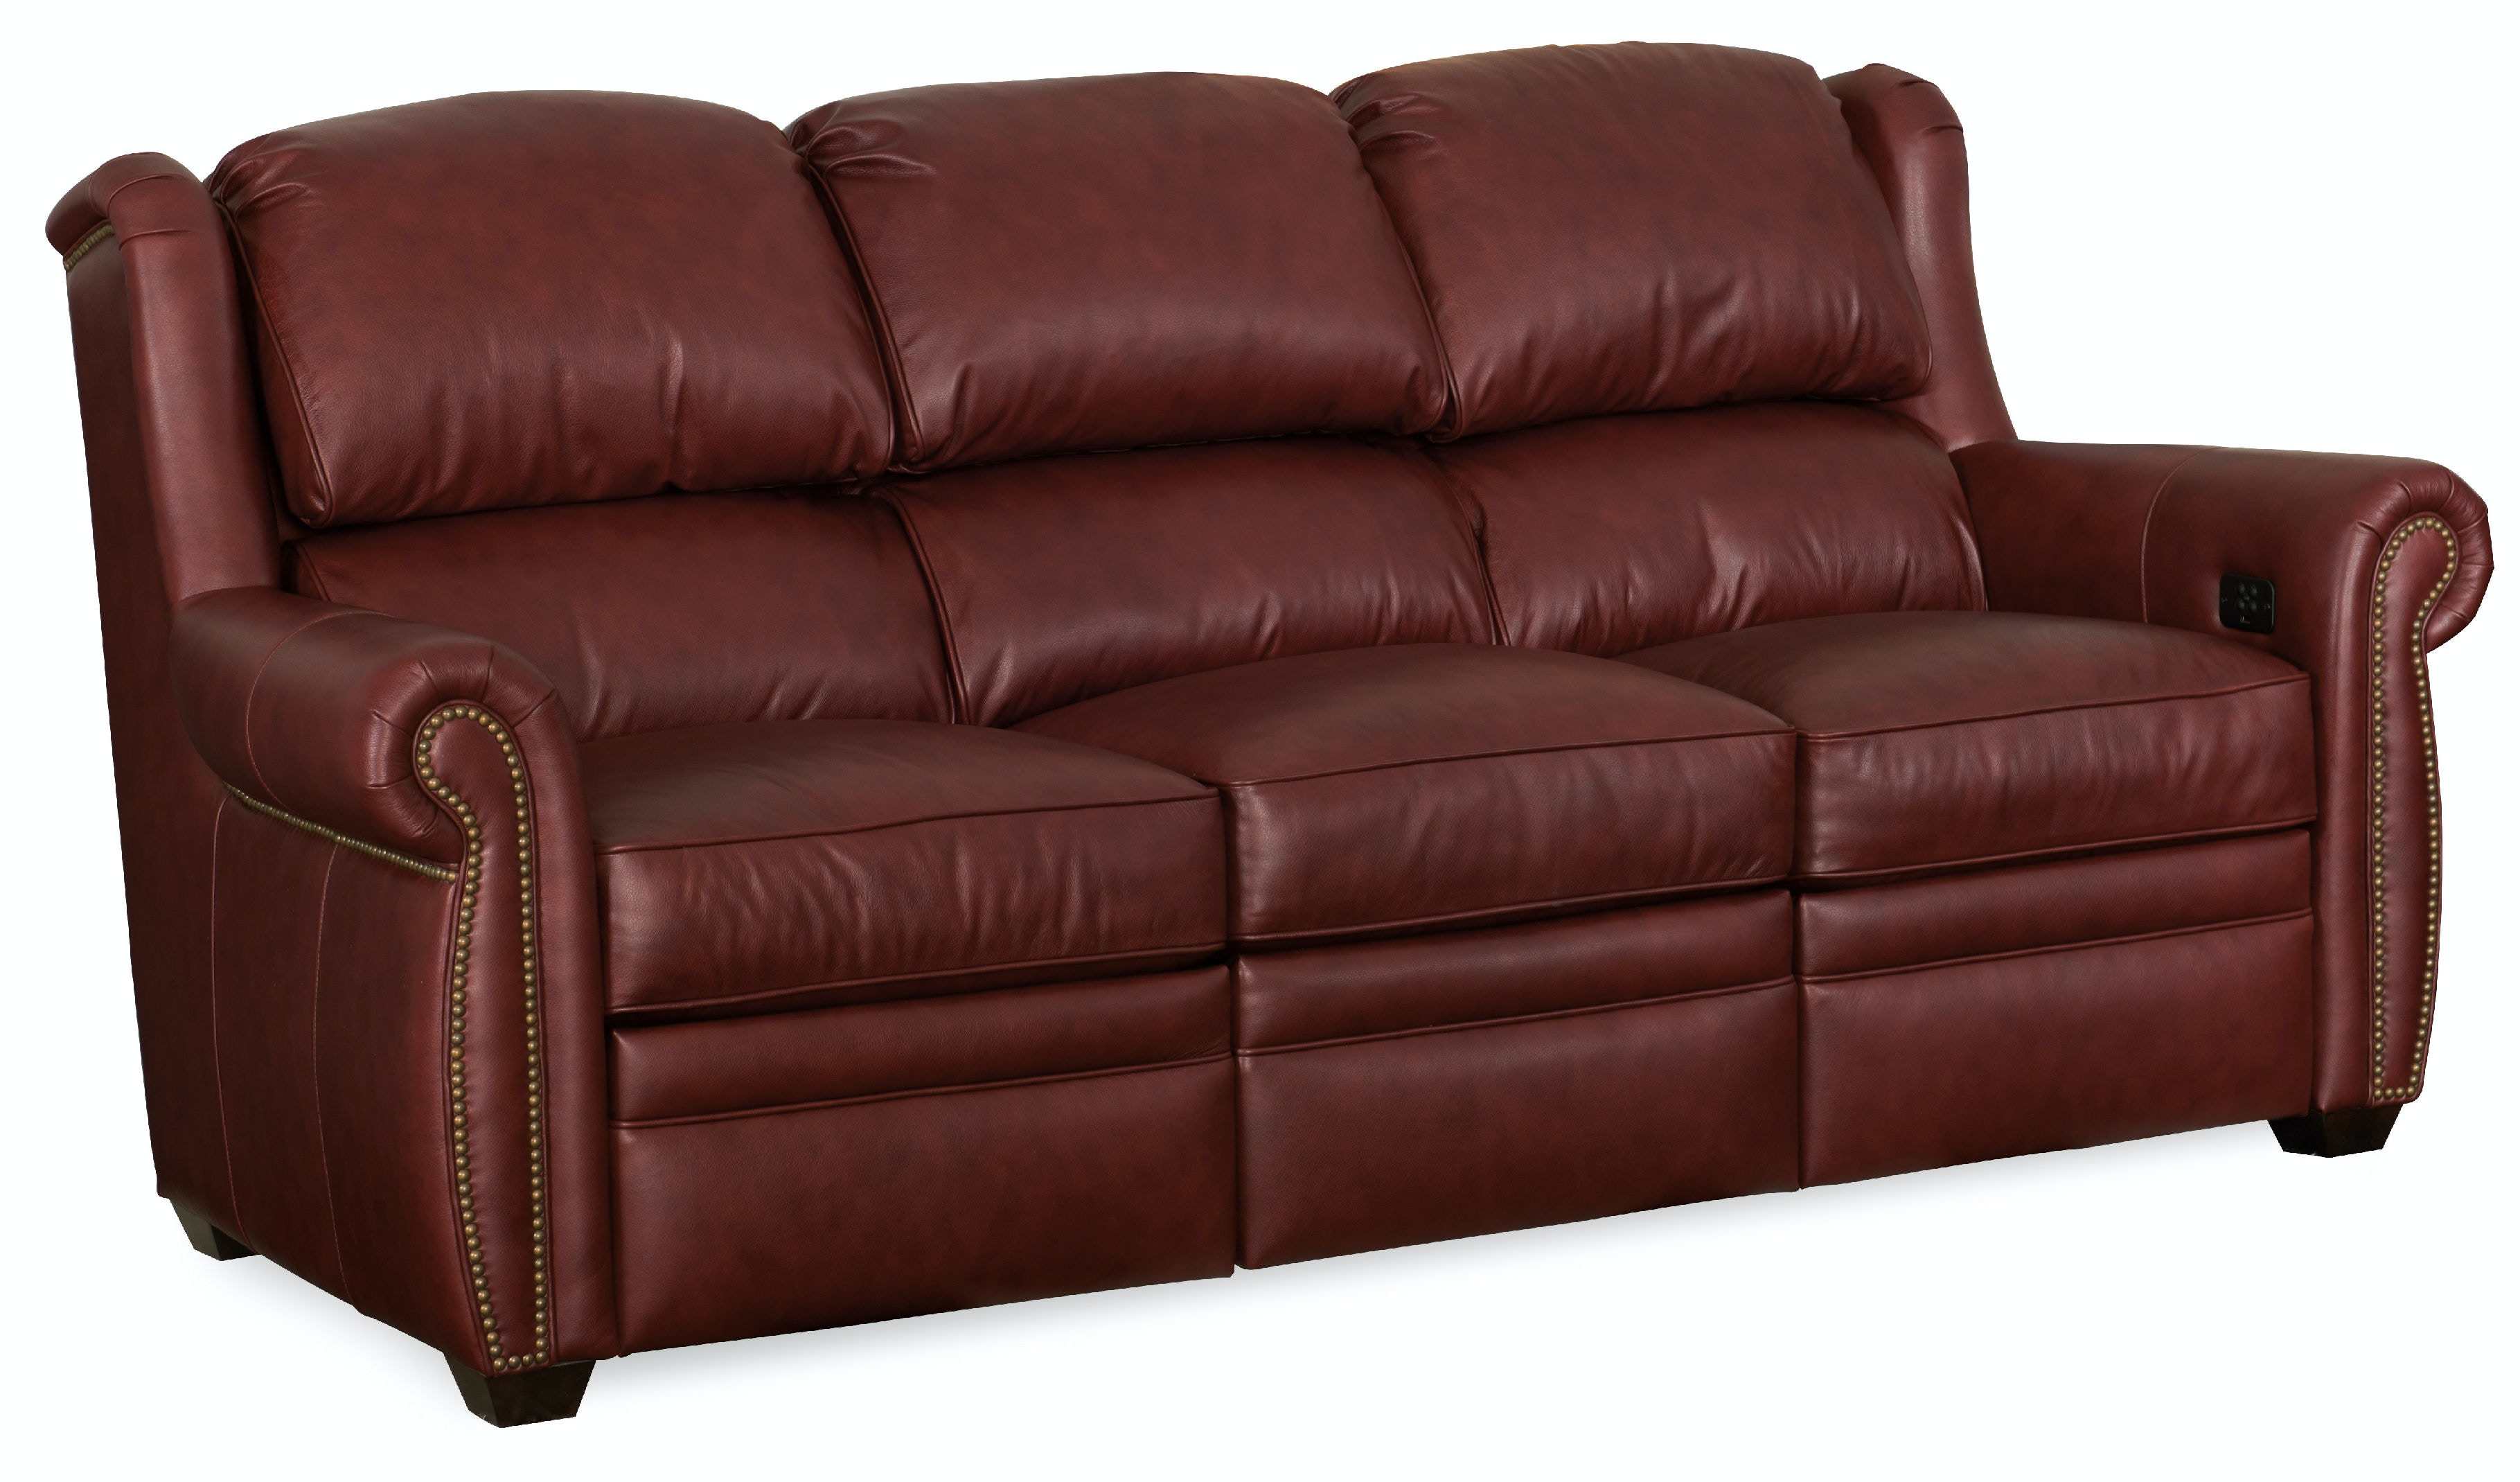 Attirant Bradington Young Furniture Discovery Sofa L U0026 R Recline   W/Articulating HR  962